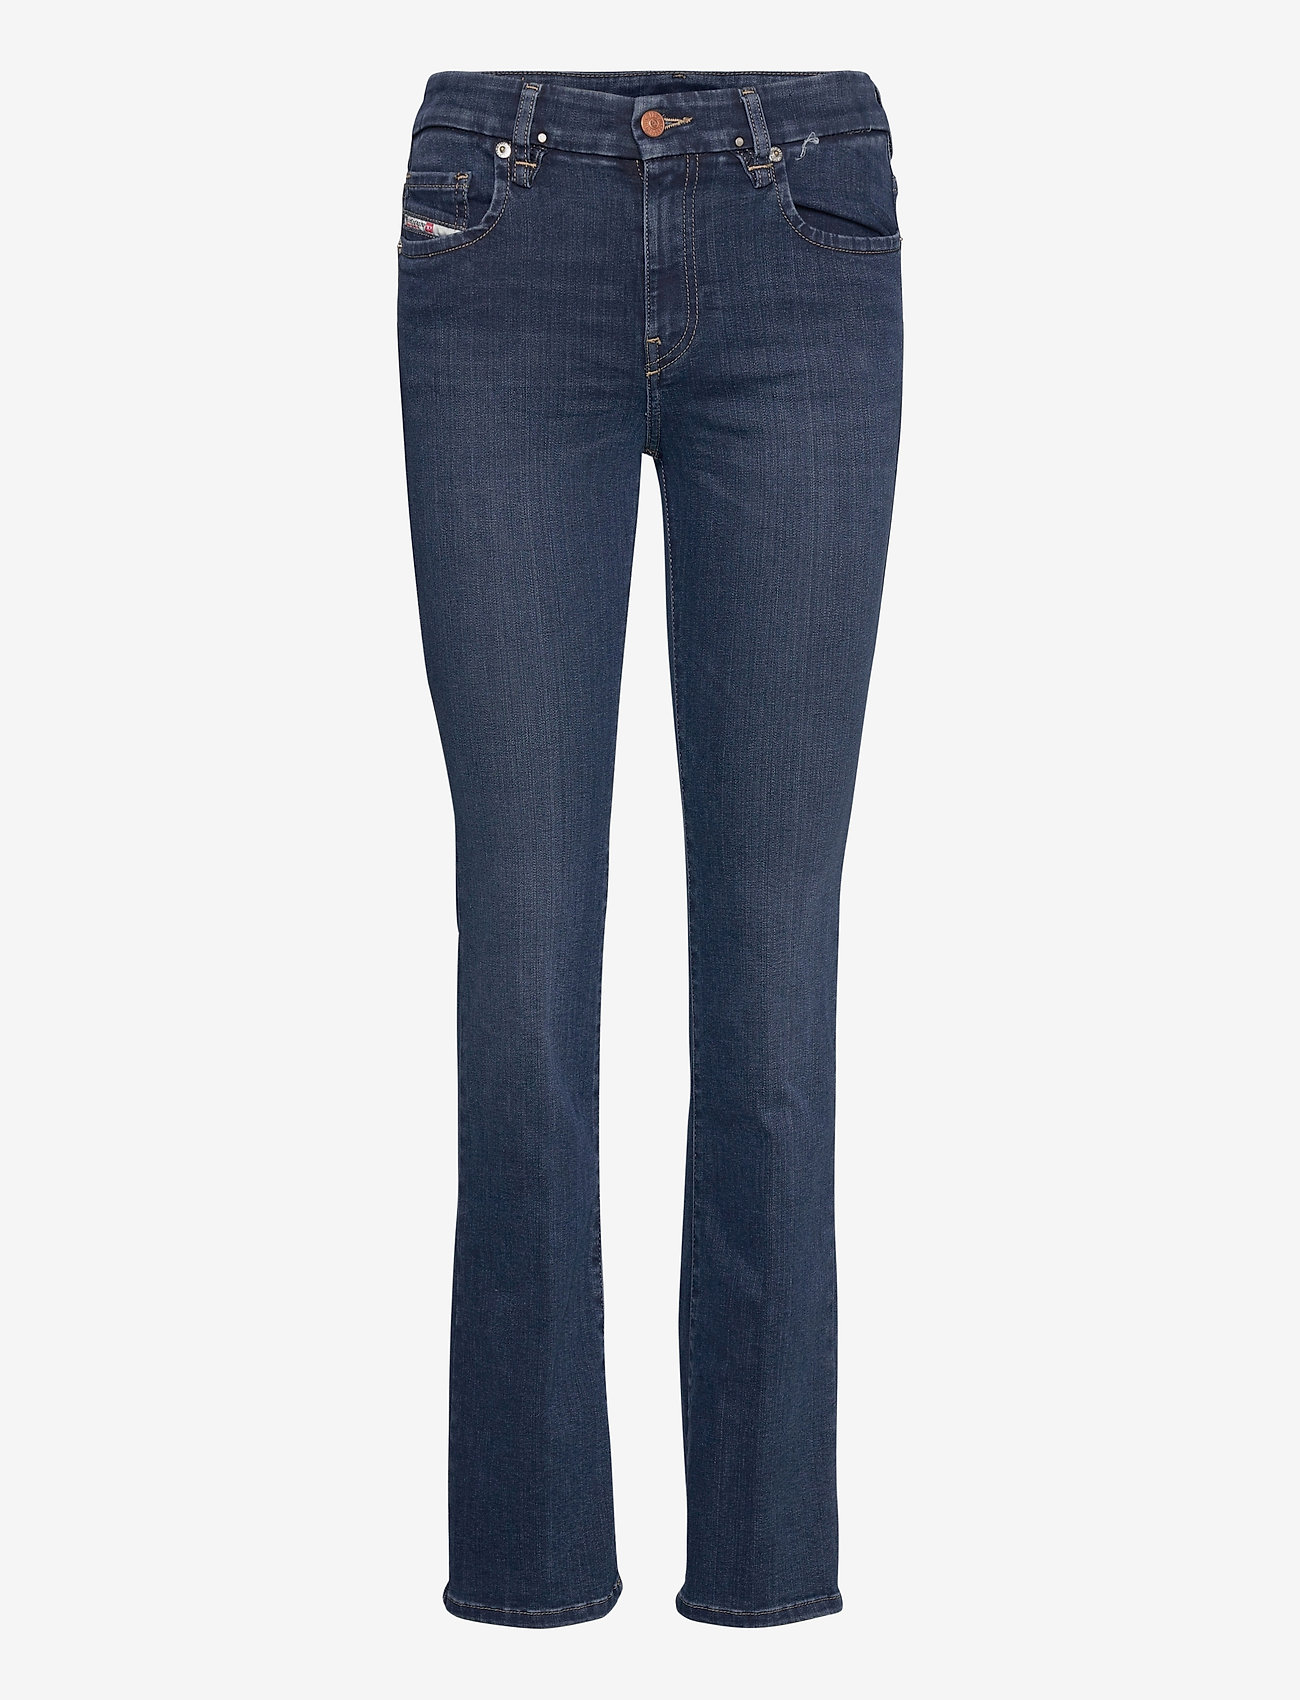 Diesel Women - D-SLANDY-B - slim jeans - blue denim - 0